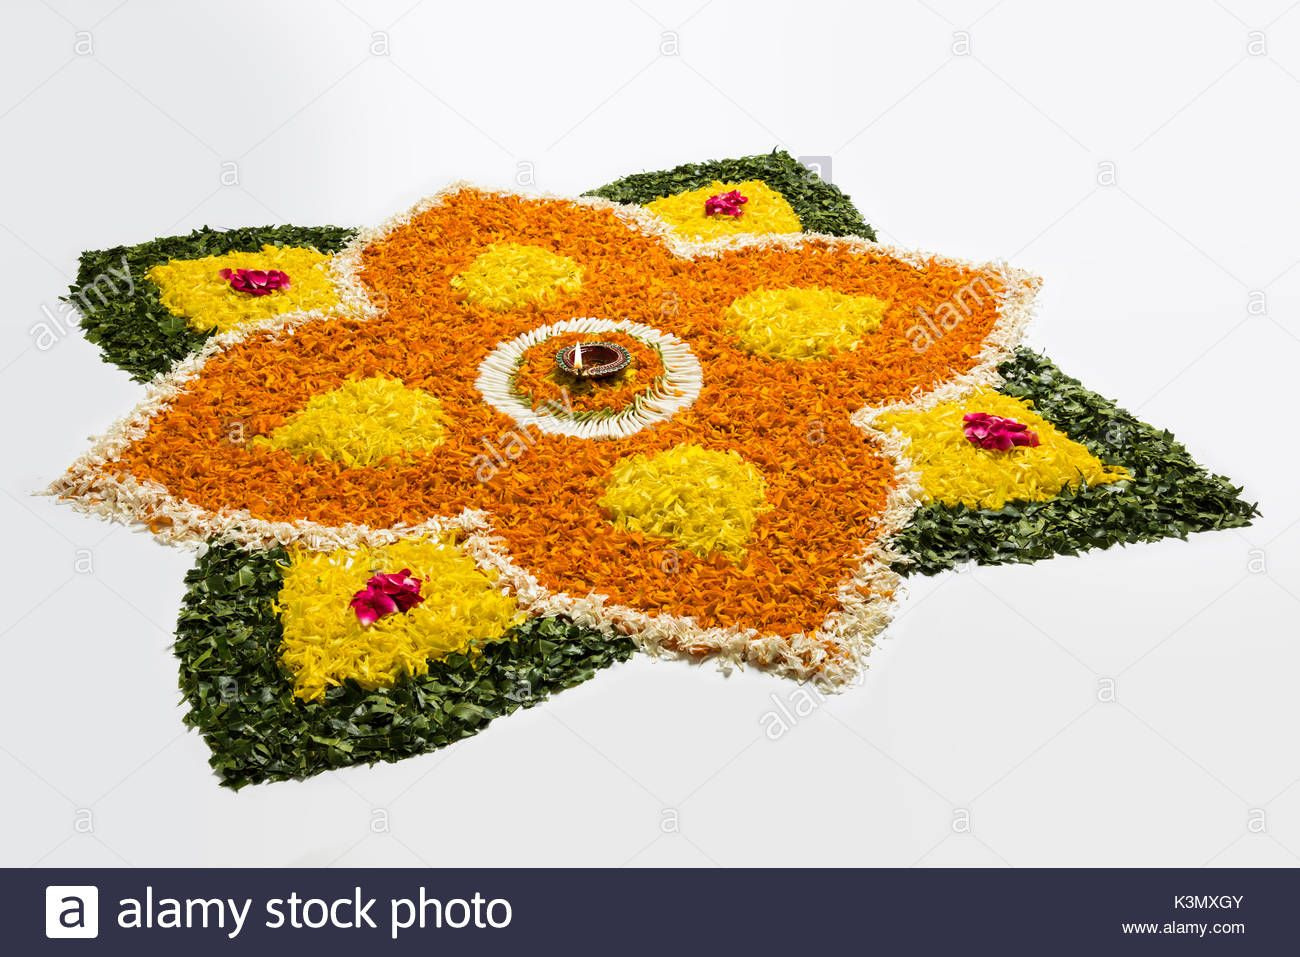 Download This Stock Image Flower Rangoli For Diwali Or Pongal Or Onam Made Using Marigold Or Zendu Flowers And Red Red Rose Petals Flower Rangoli Rose Petals